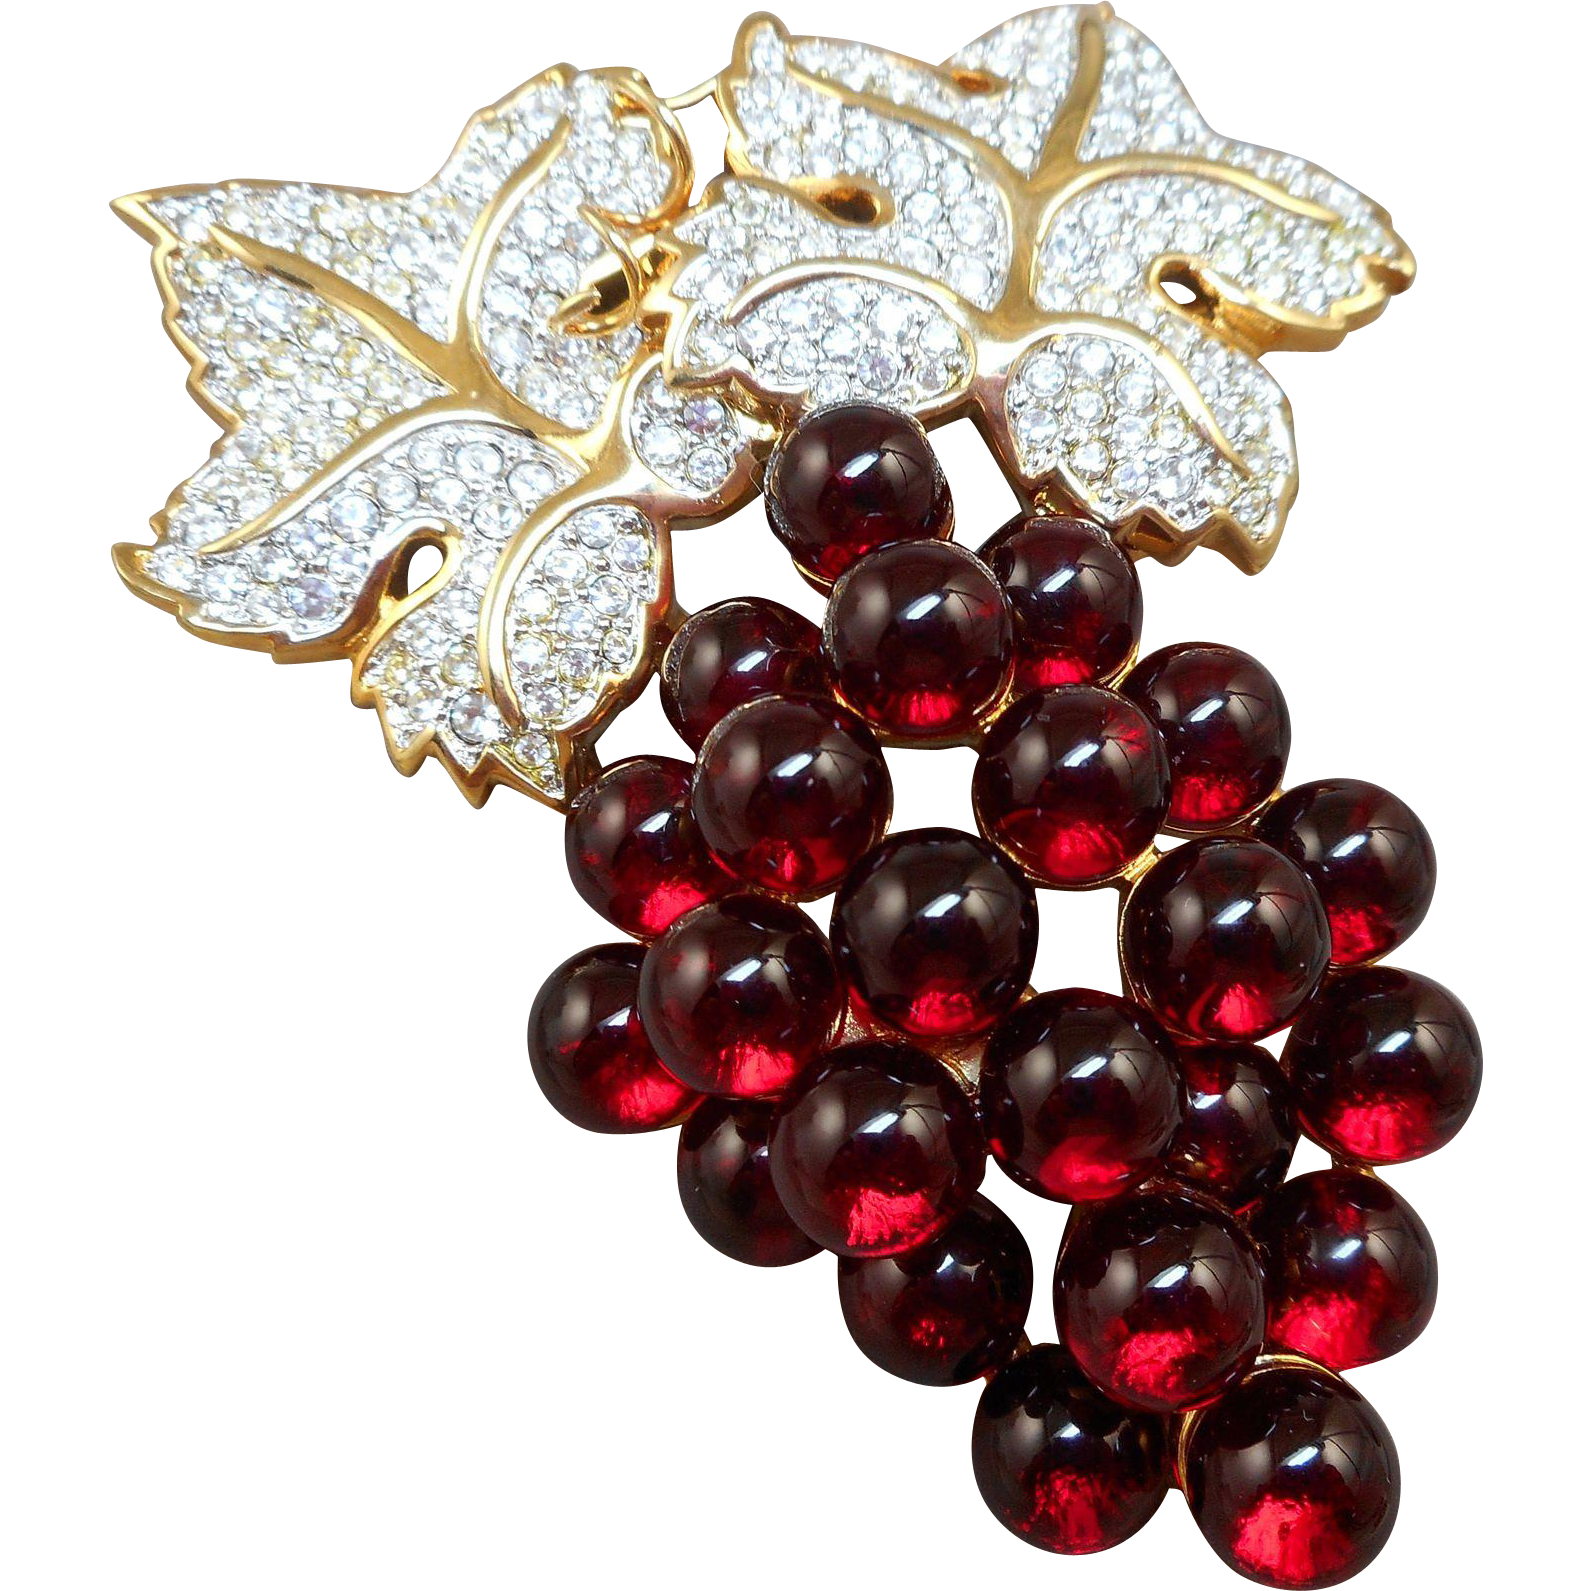 Swarovski Grapes Brooch - S.A.L.